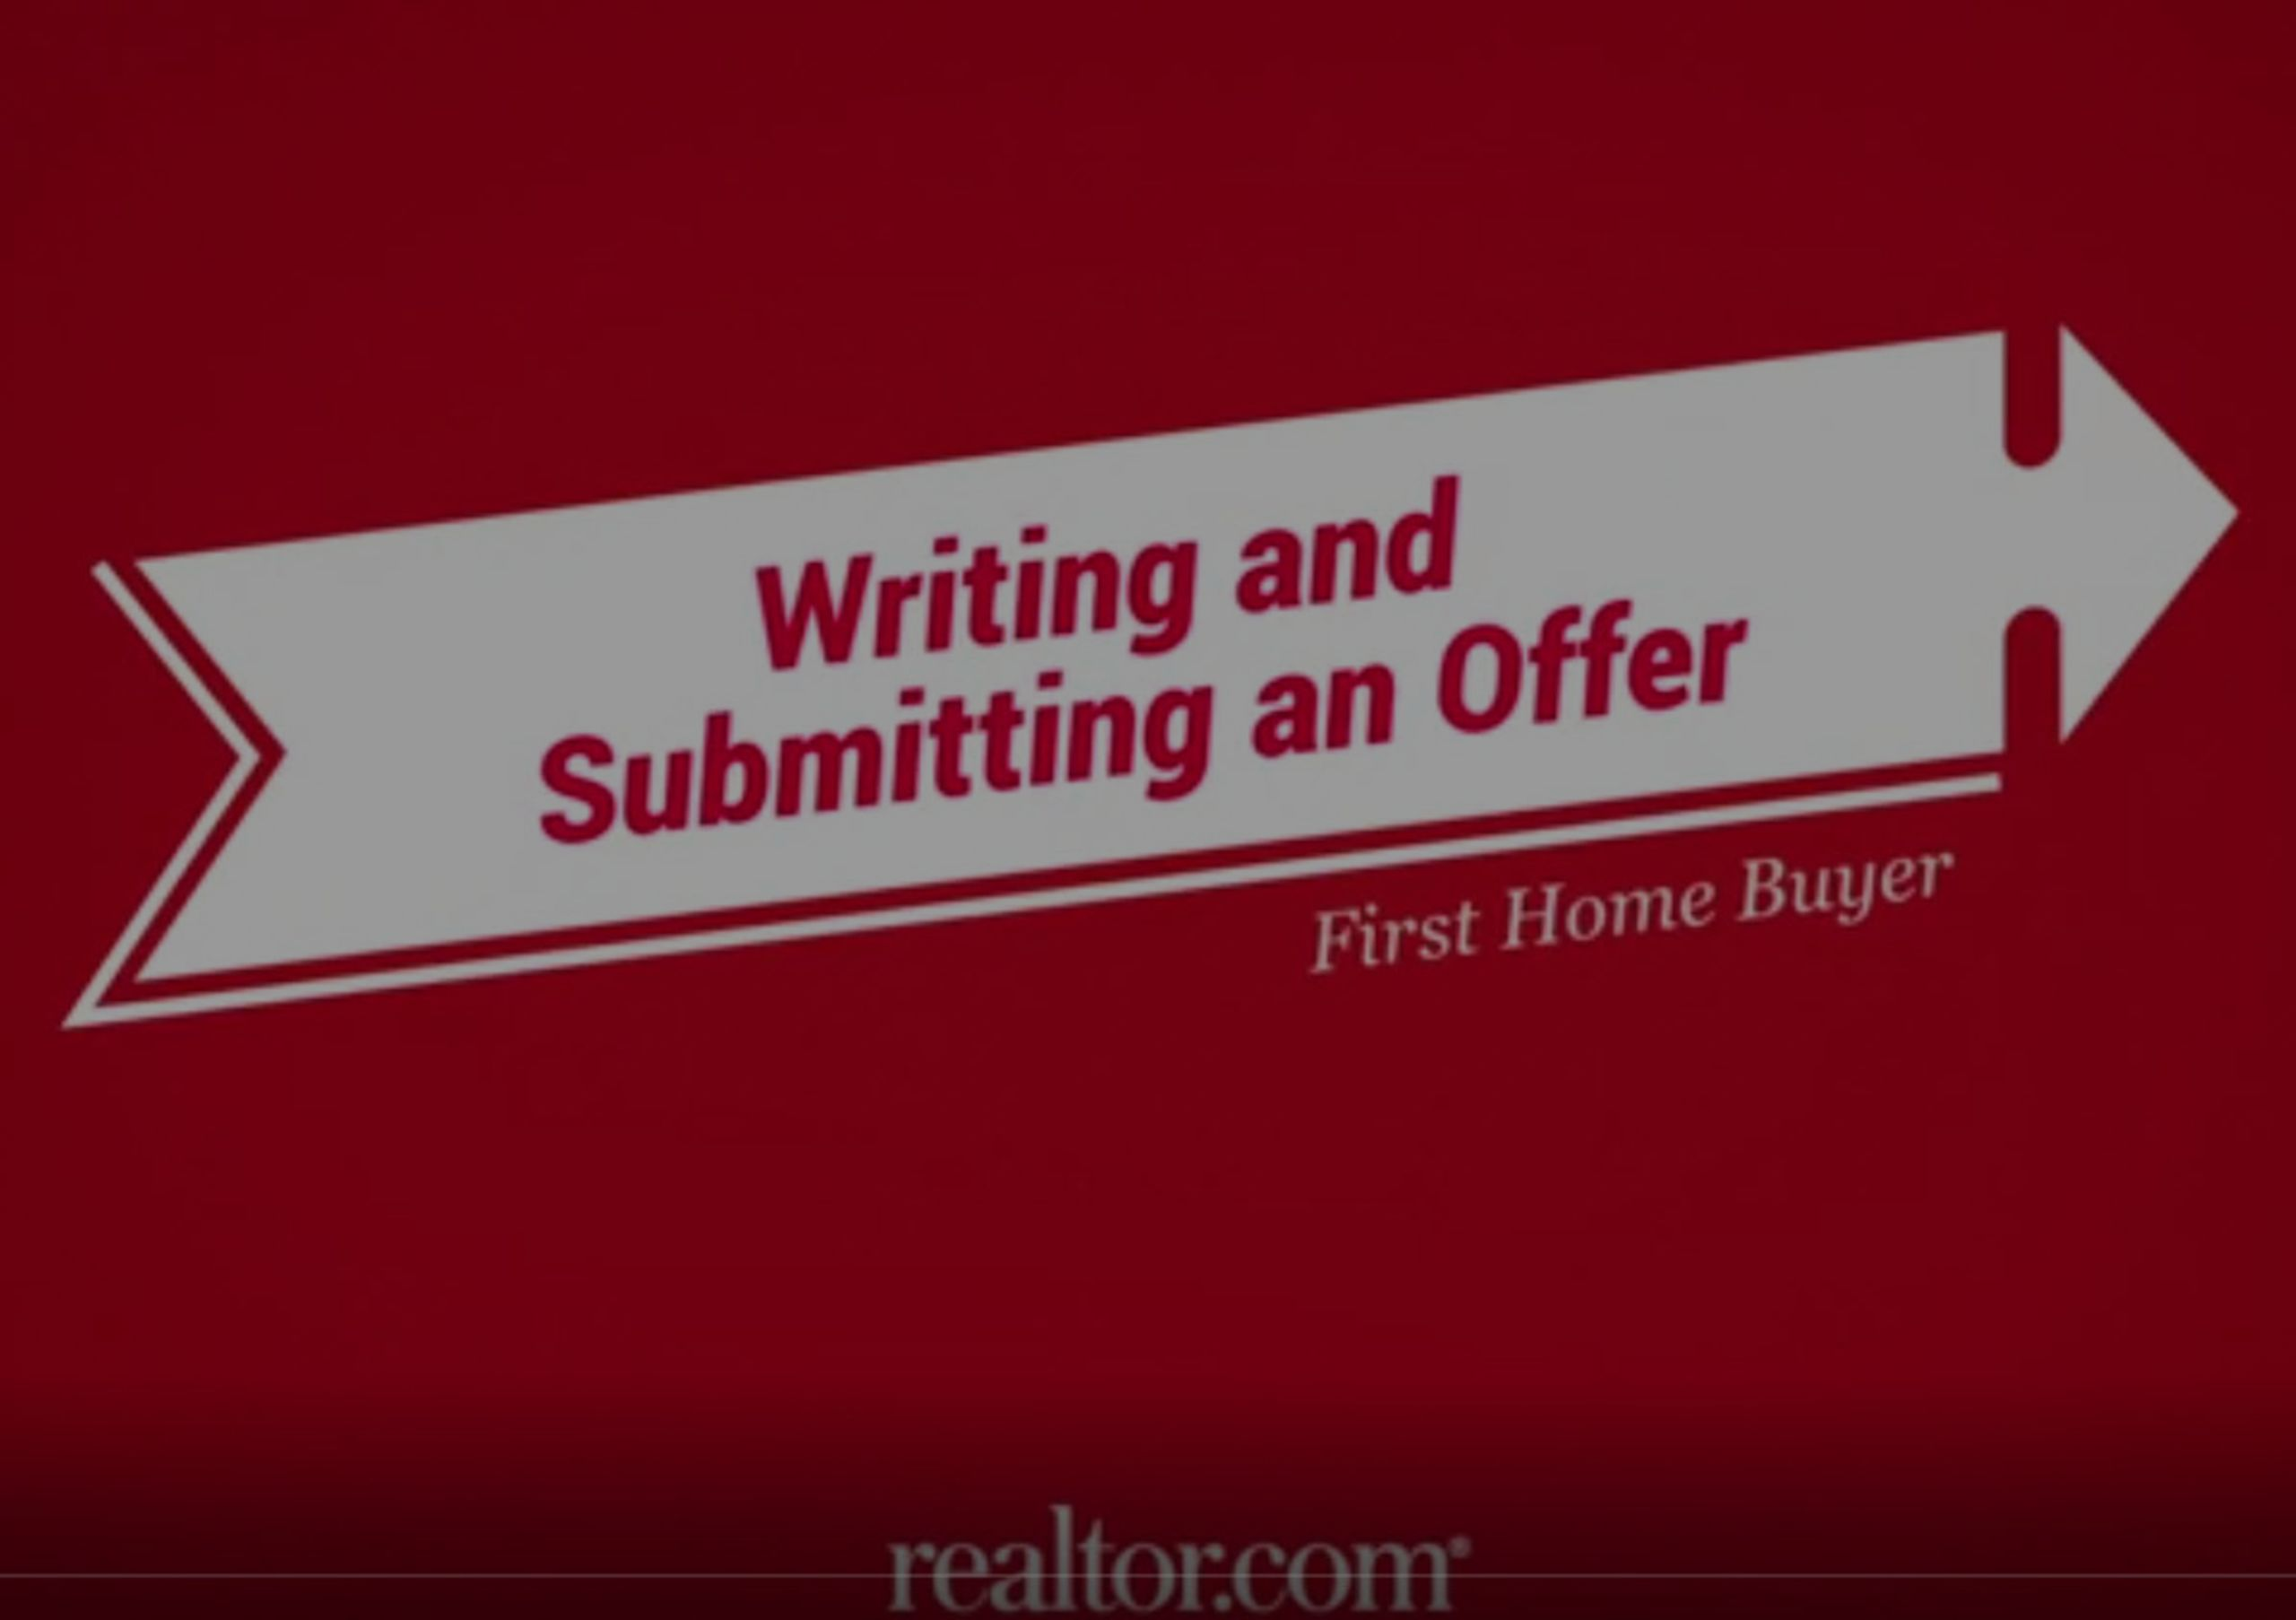 Step 3: Submitting an Offer